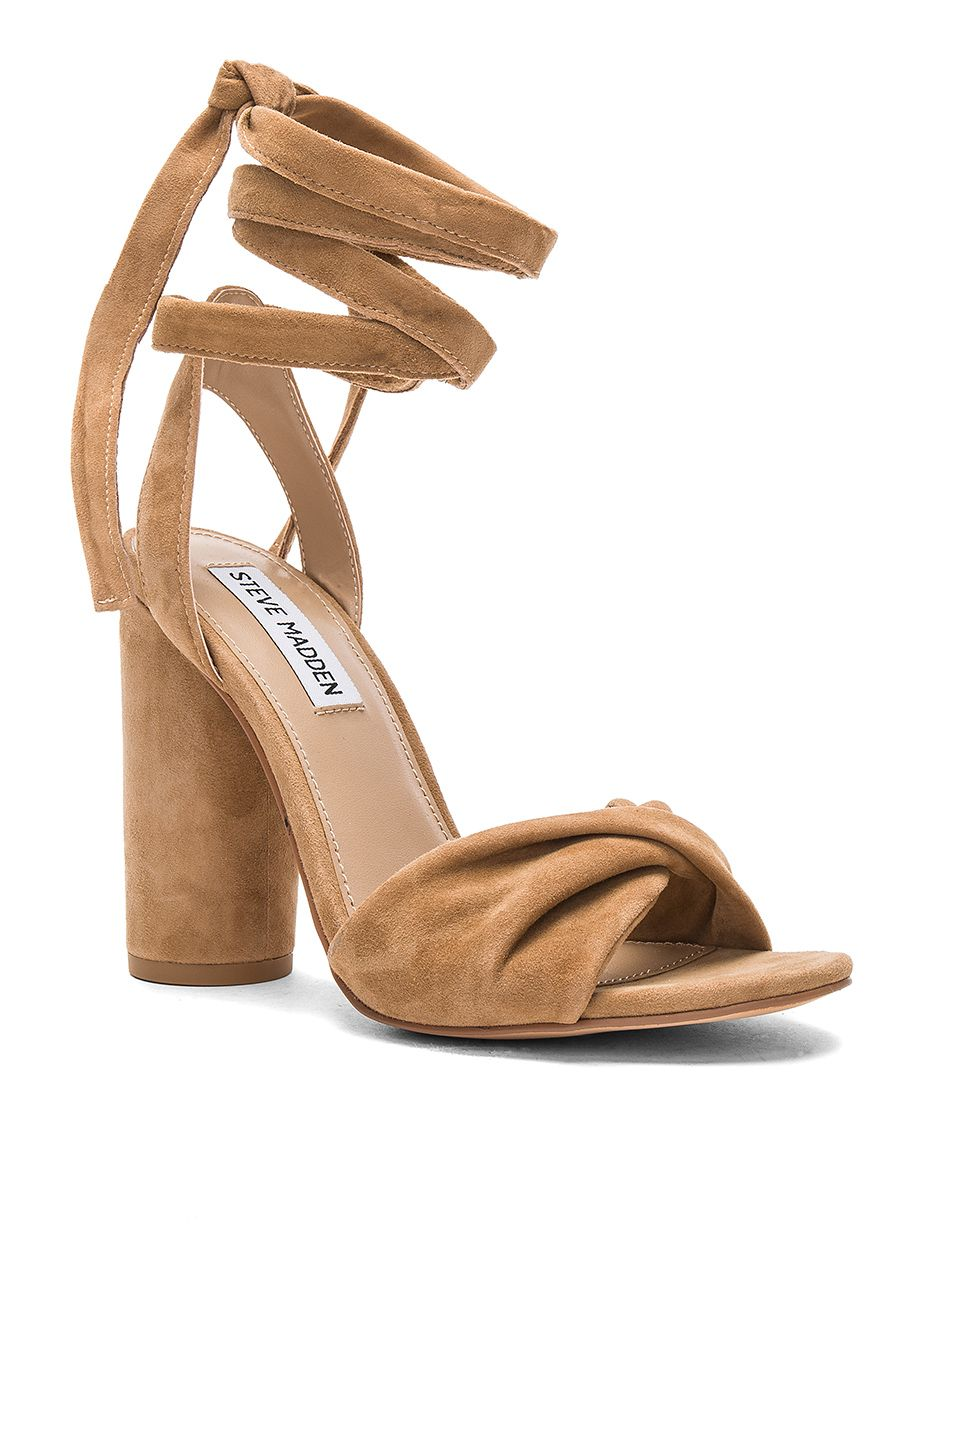 Steve Madden Clary Heel in Camel Suede | REVOLVE